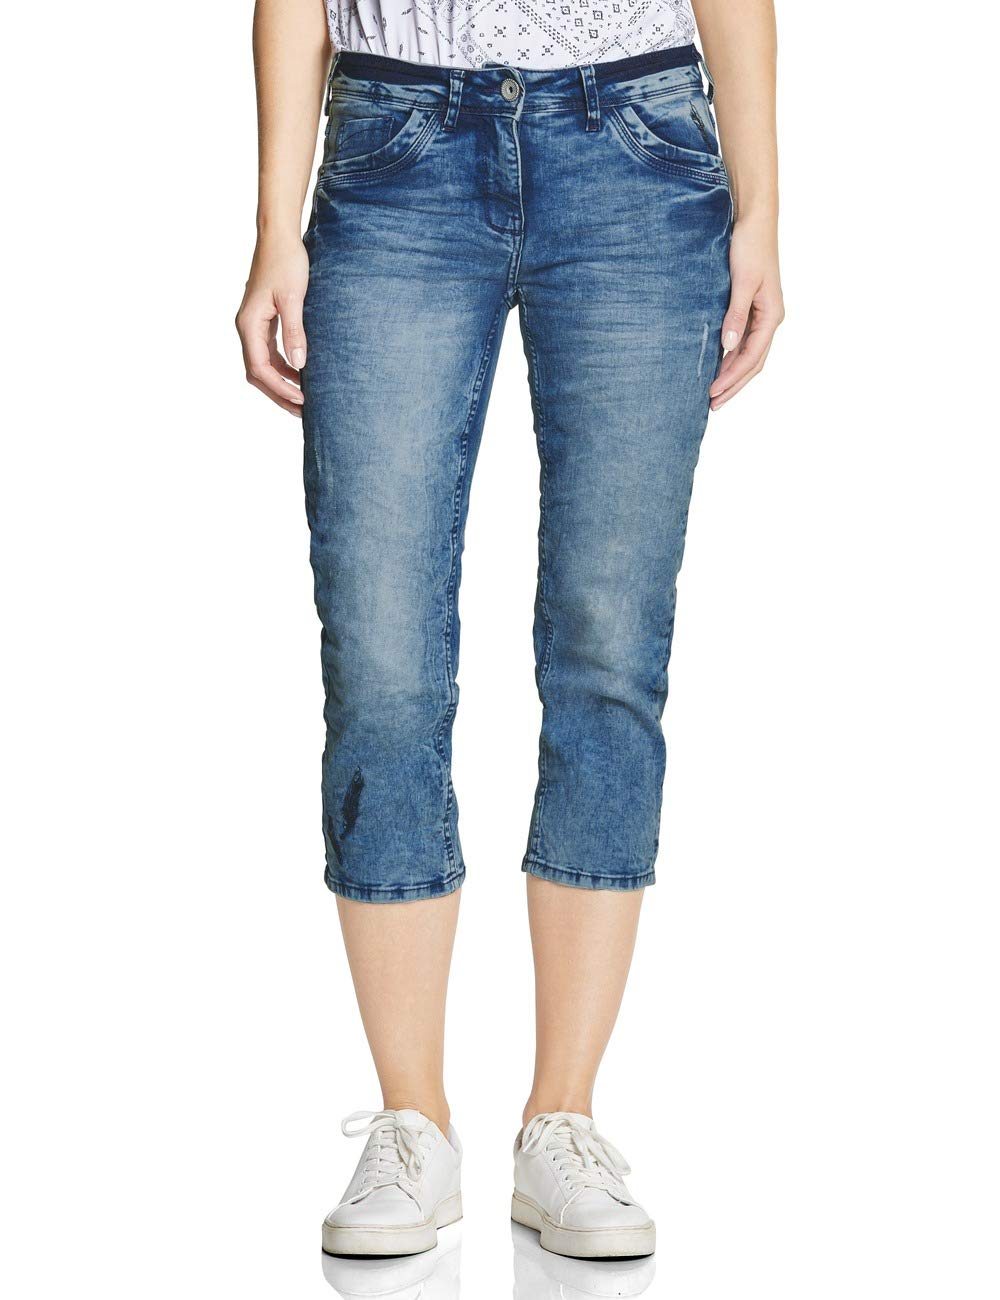 Scarlett Wash Jean Fabricant28Femme 372303 Used Cecil 10239W28taille DroitBleuauthentic xedrBWCo